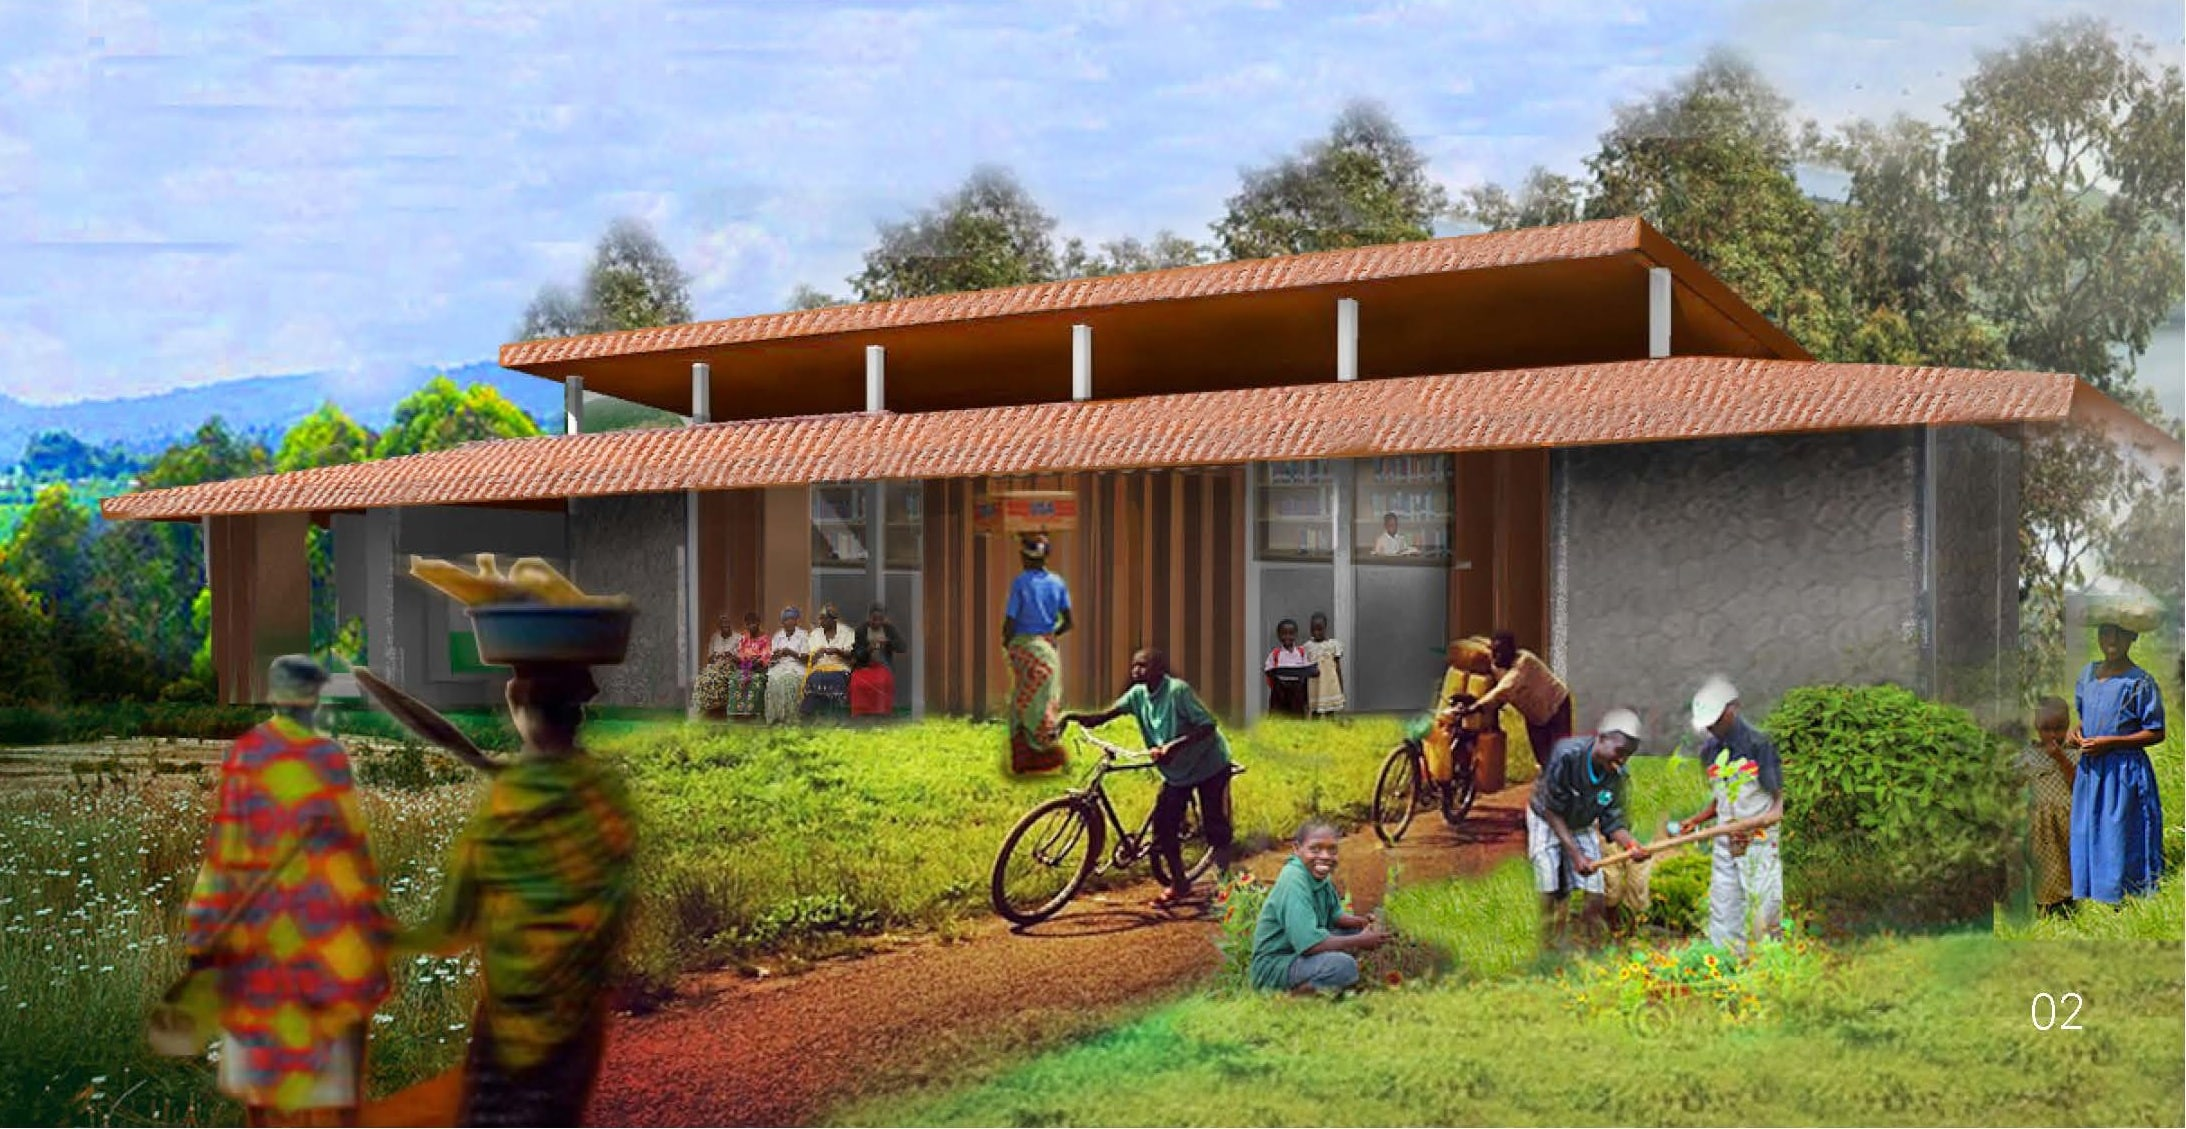 RWANDA: Sunzu Village library, designed by Andrew Goodwin